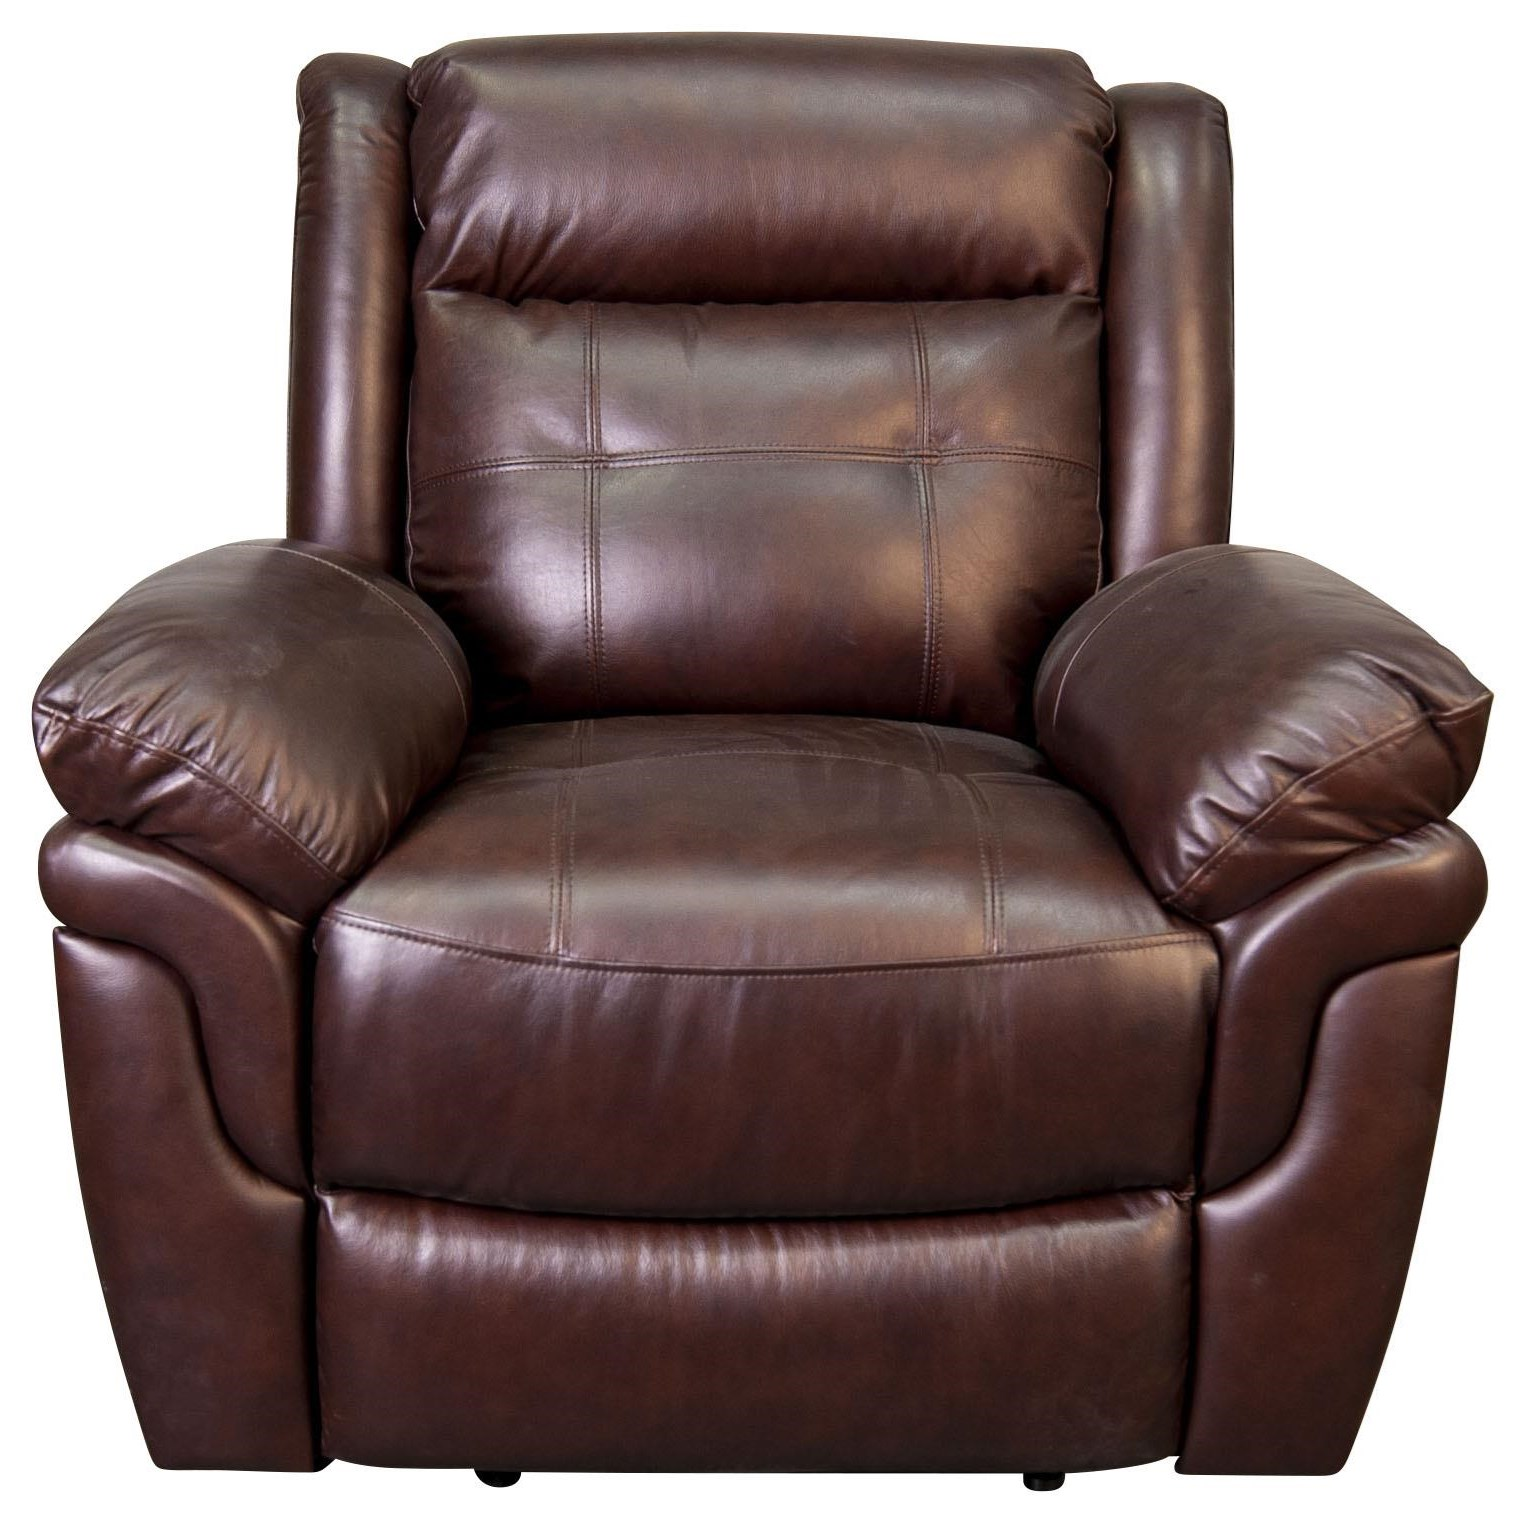 Henson Leather Match Power Recliner